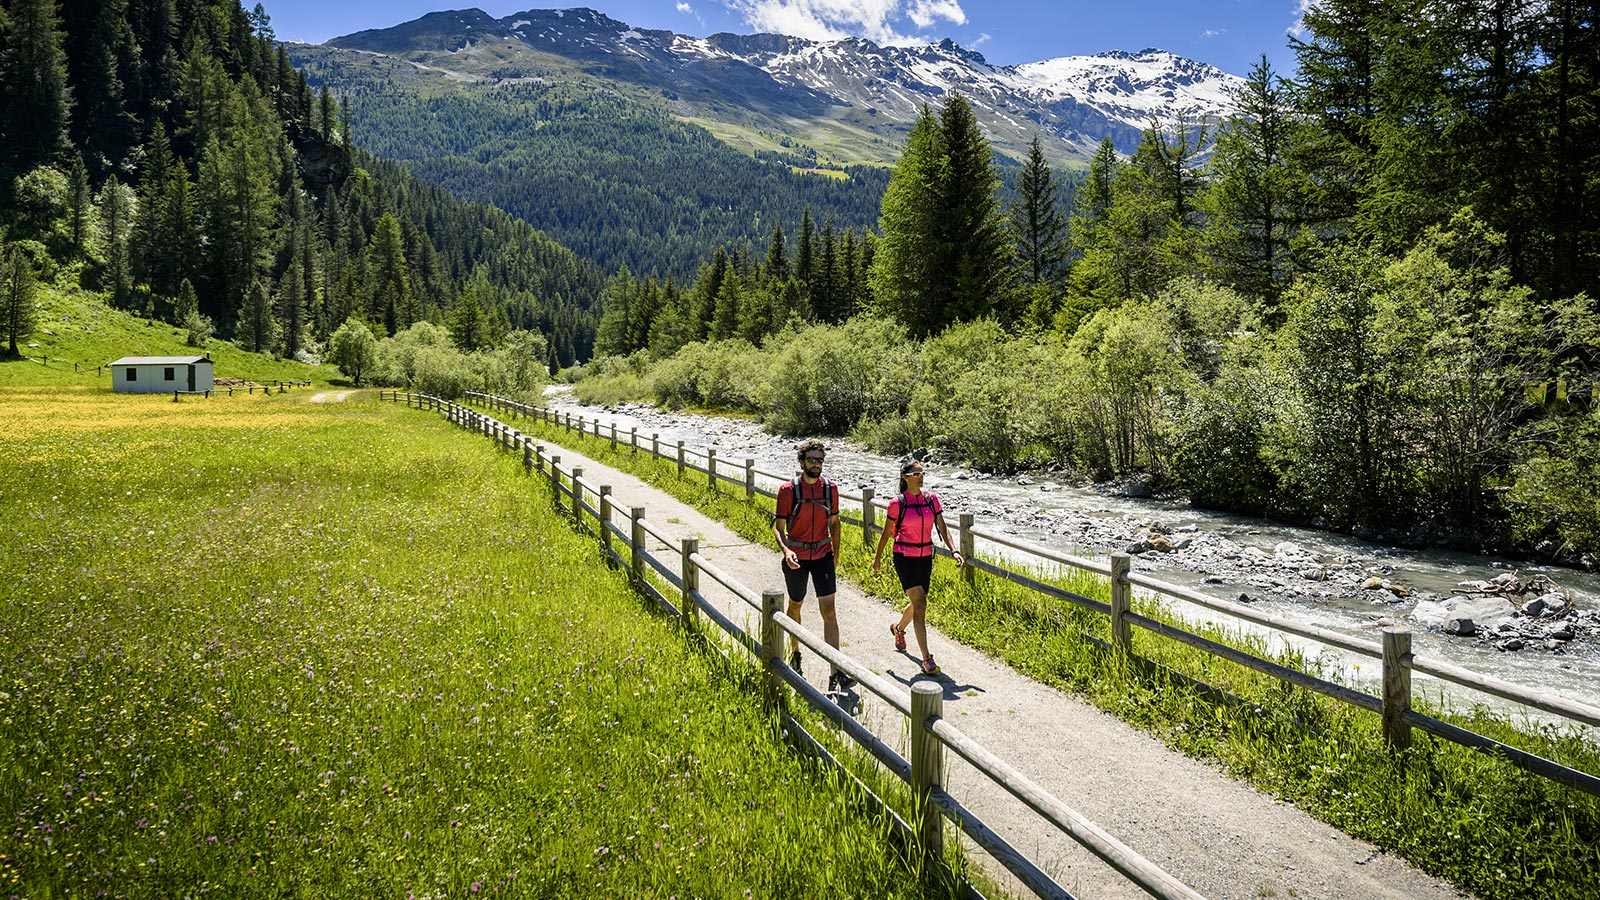 Two runners during the summer period enjoy a walk on the Stelvio National Park